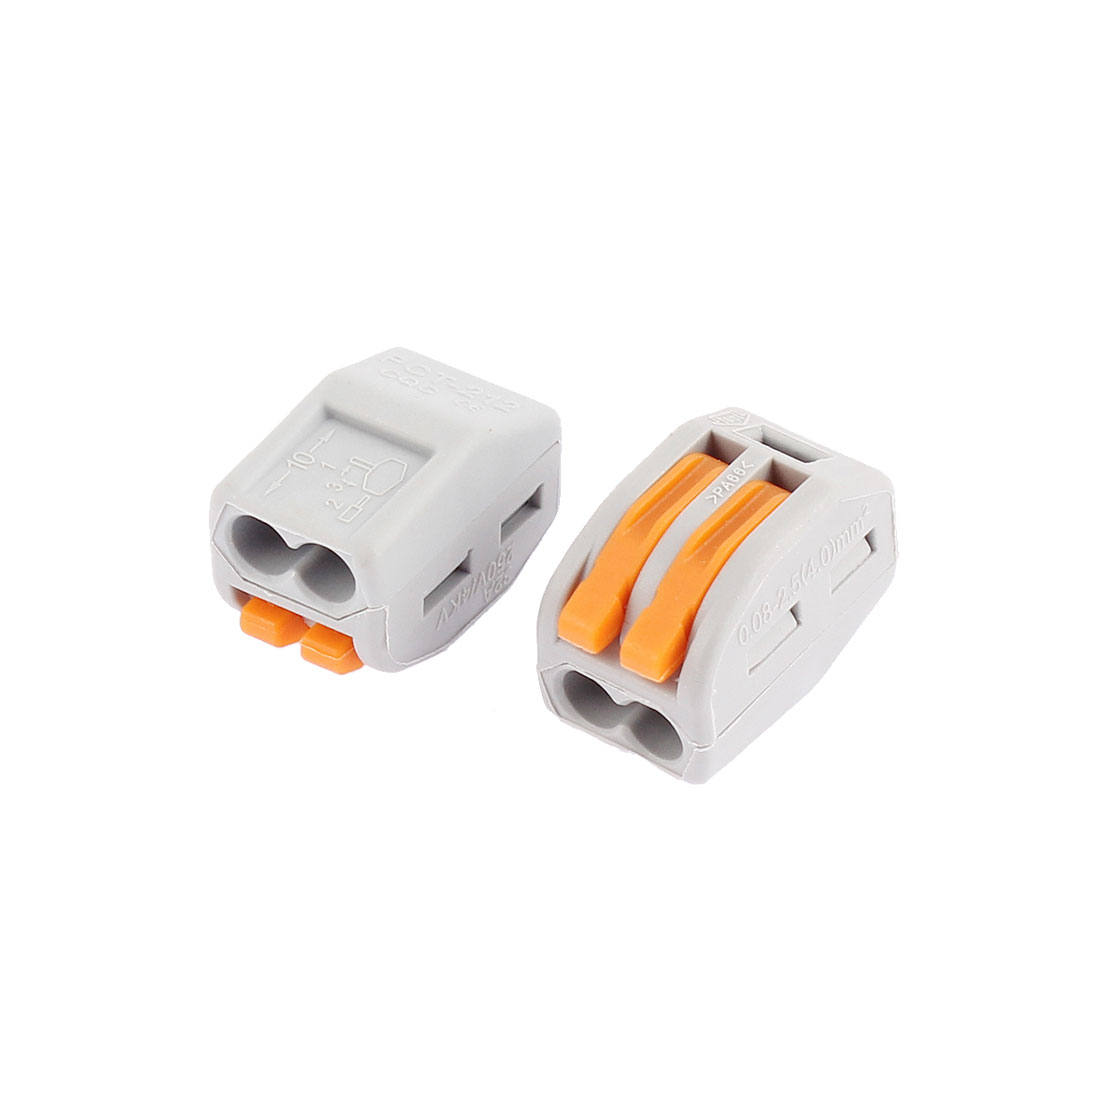 AC 250V 32A Lever Lock 2 Pole Cable Wire Connector Terminal Block 2 Pcs